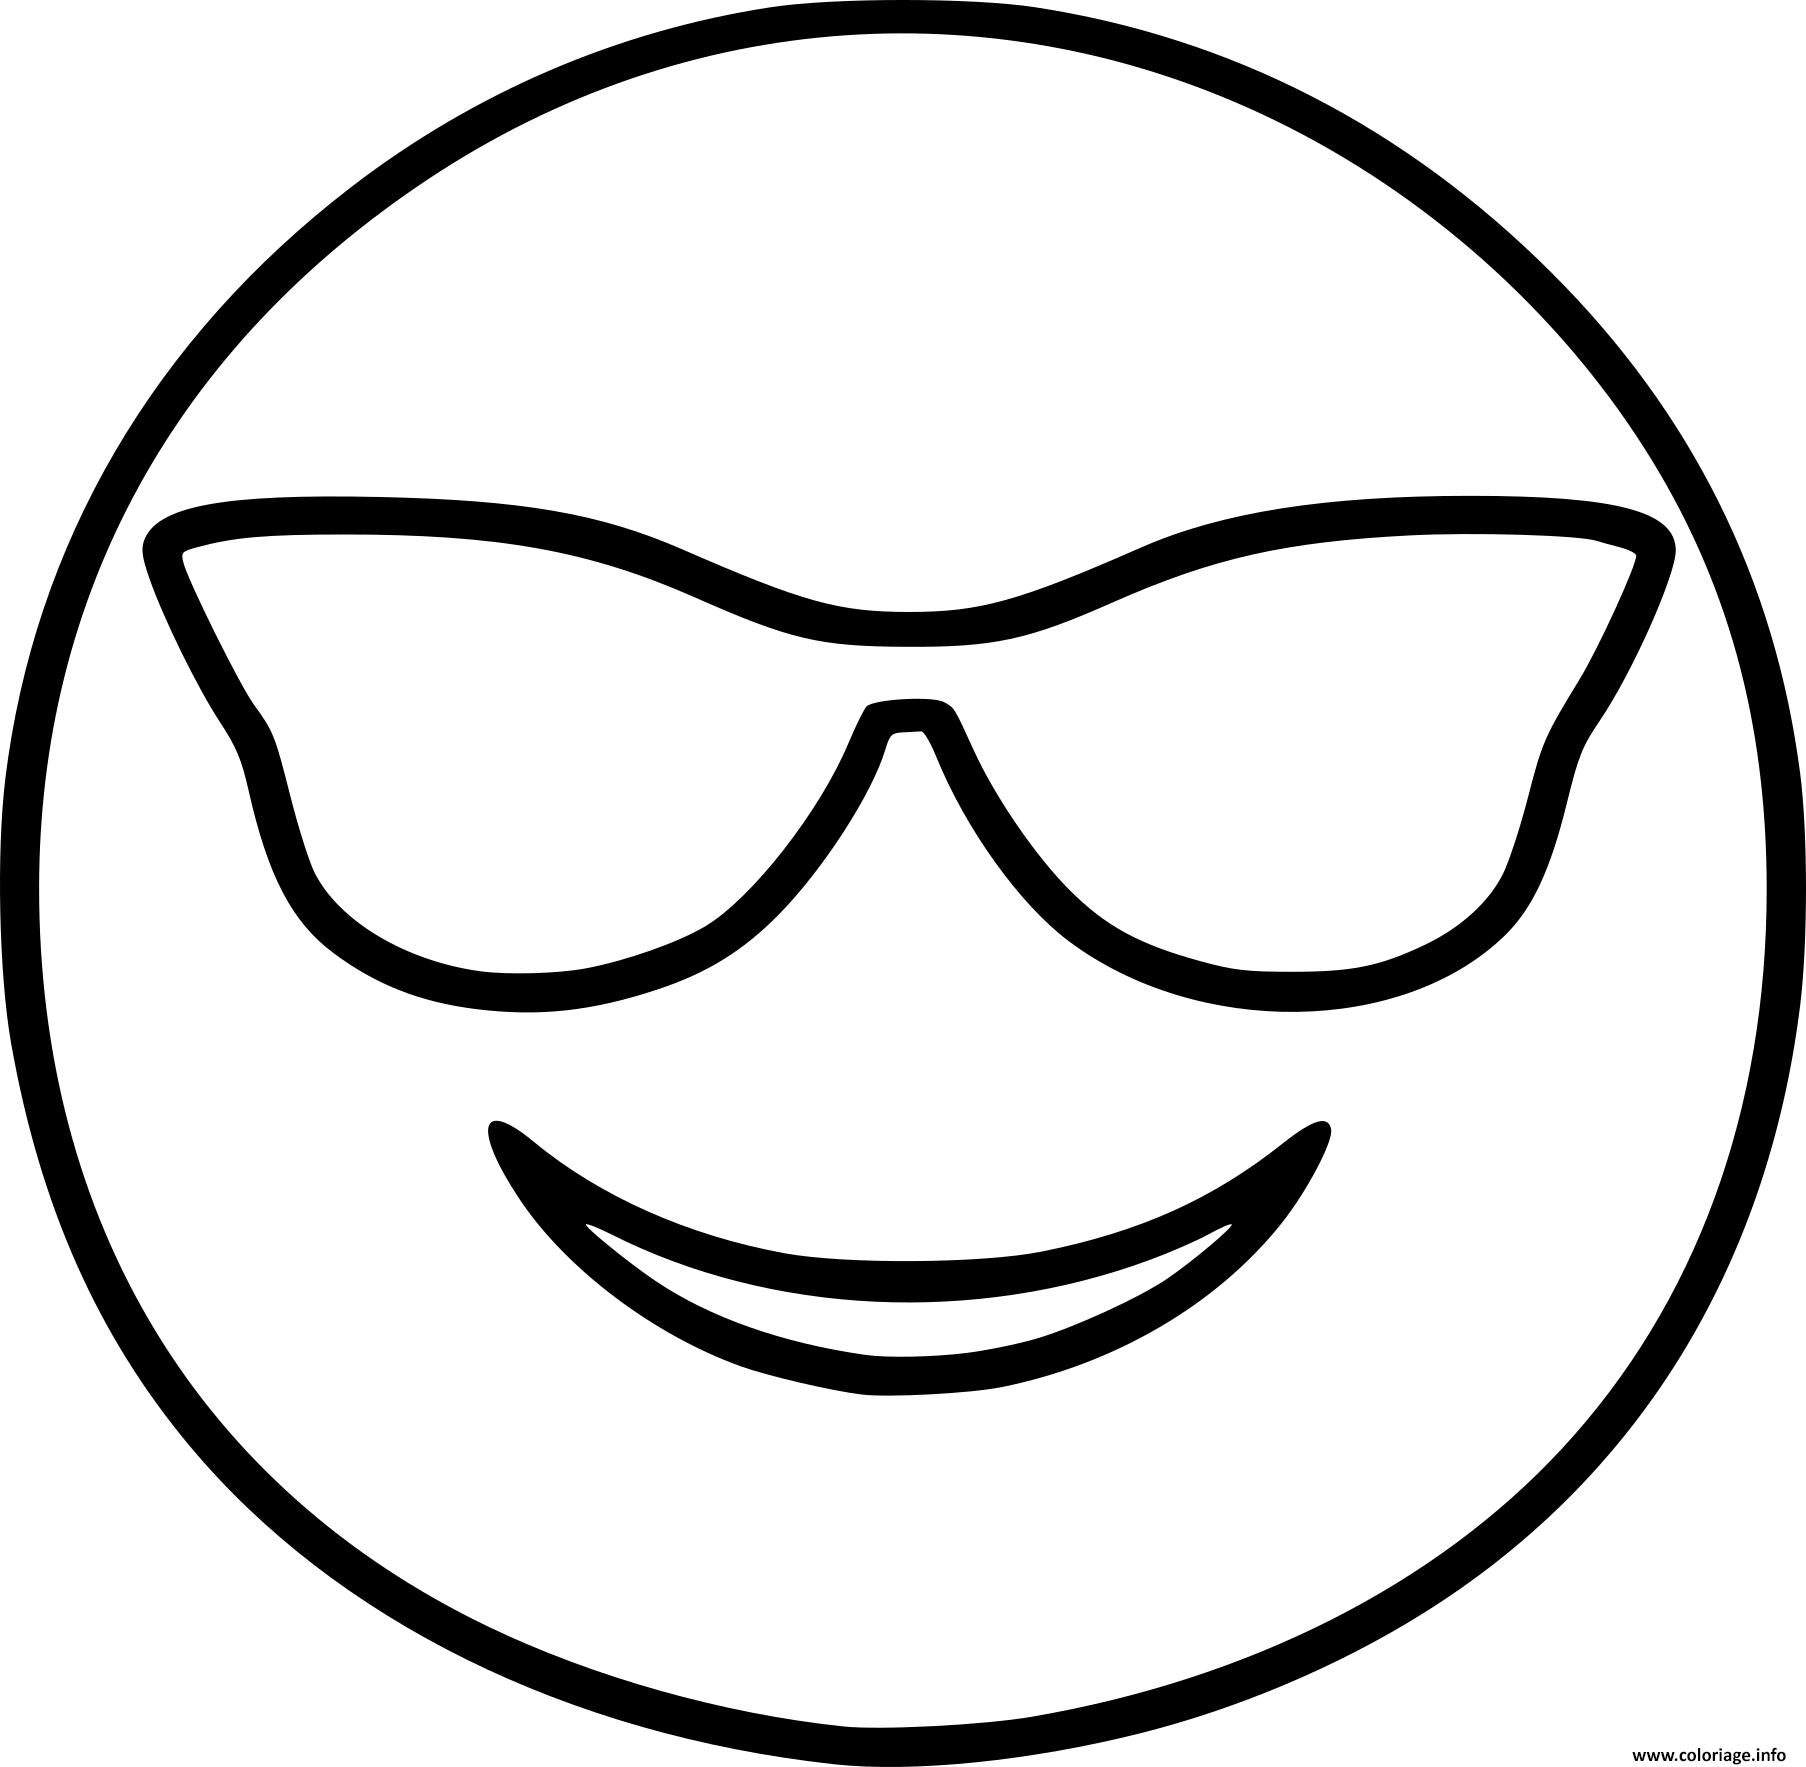 Coloriage Smiley.Coloriage Smiley Emoji Cool Jecolorie Com